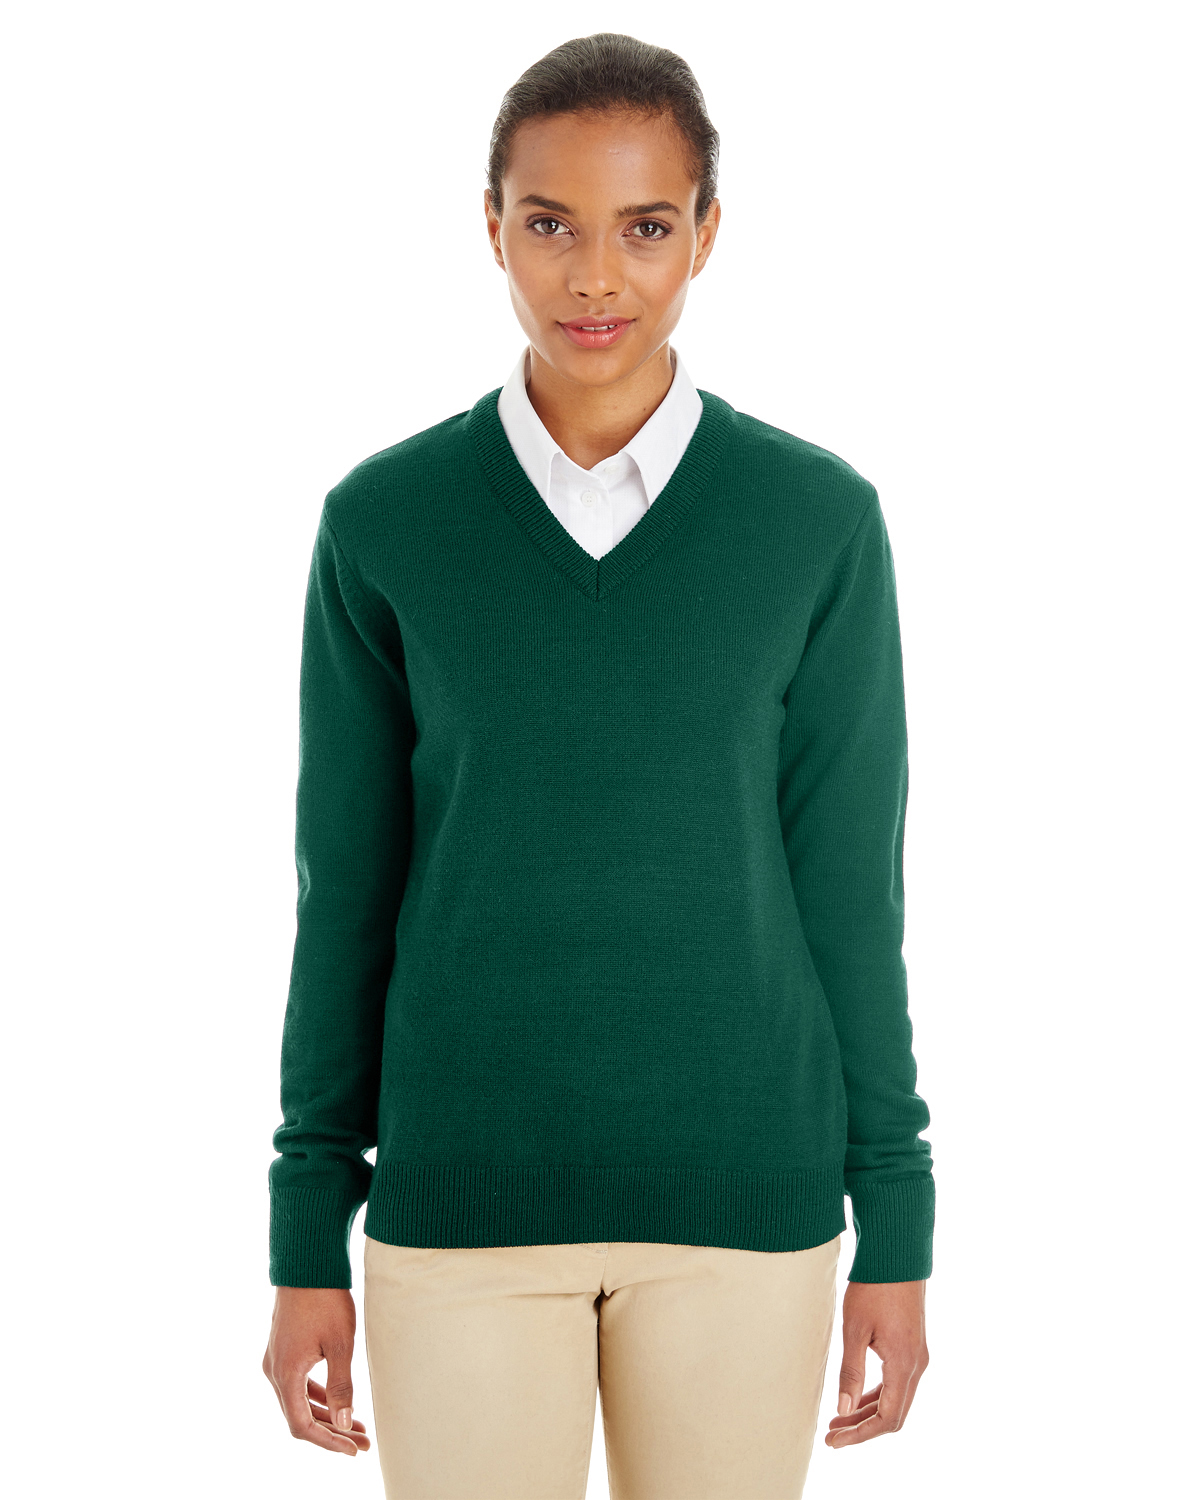 Harriton M420W - Ladies' Pilbloc™ V-Neck Sweater $18.74 - Sweater